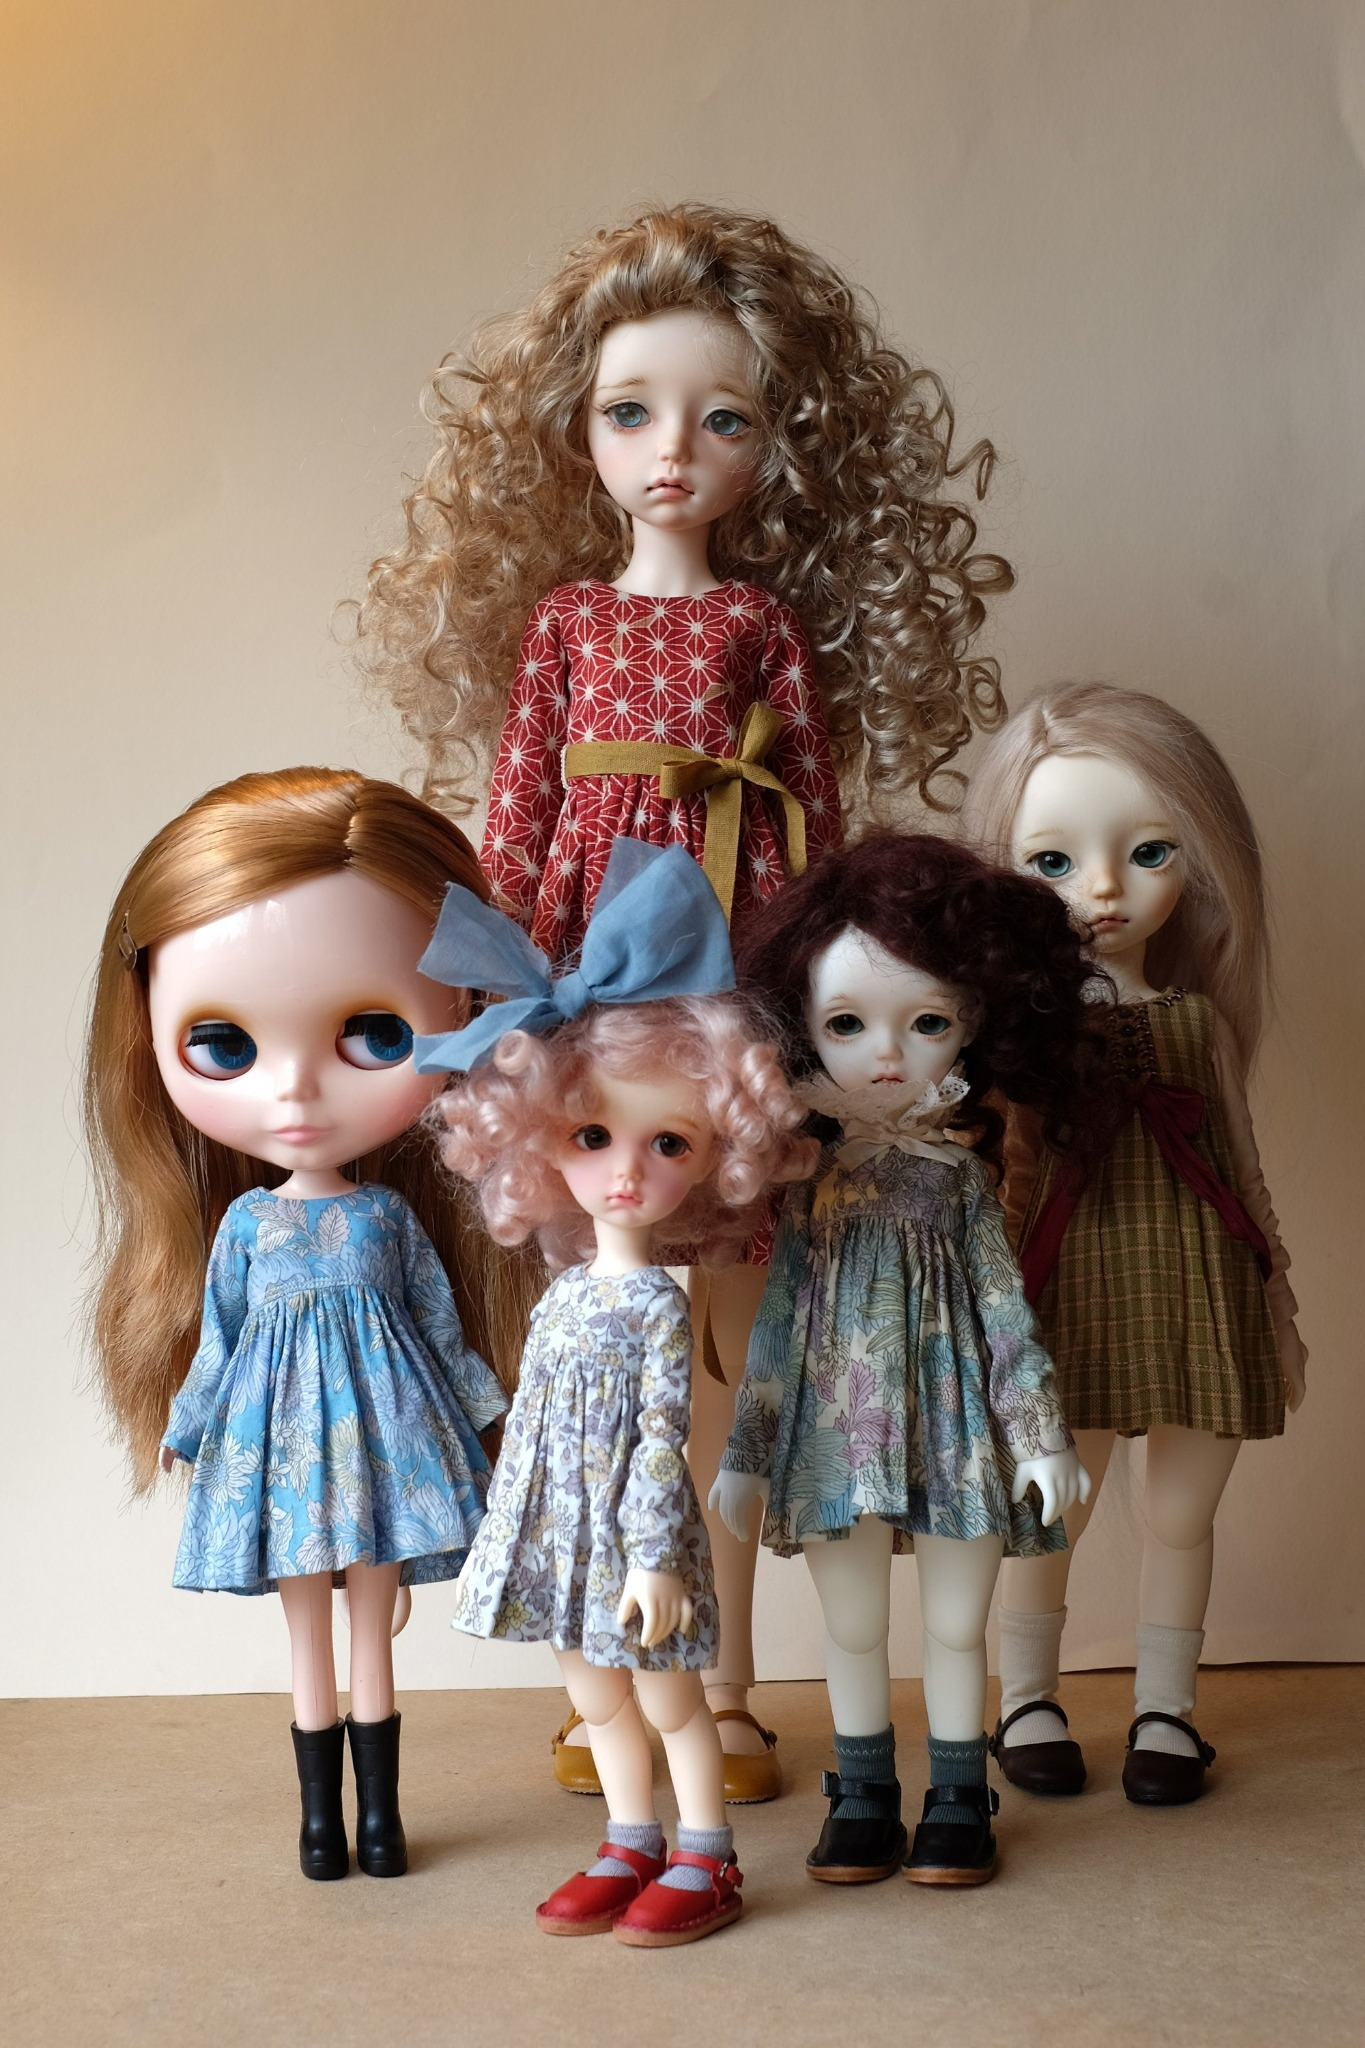 Long sleeved doll dress sewing tutorial. Level: Intermediate. Patterns for Blythe and iMda dolls.